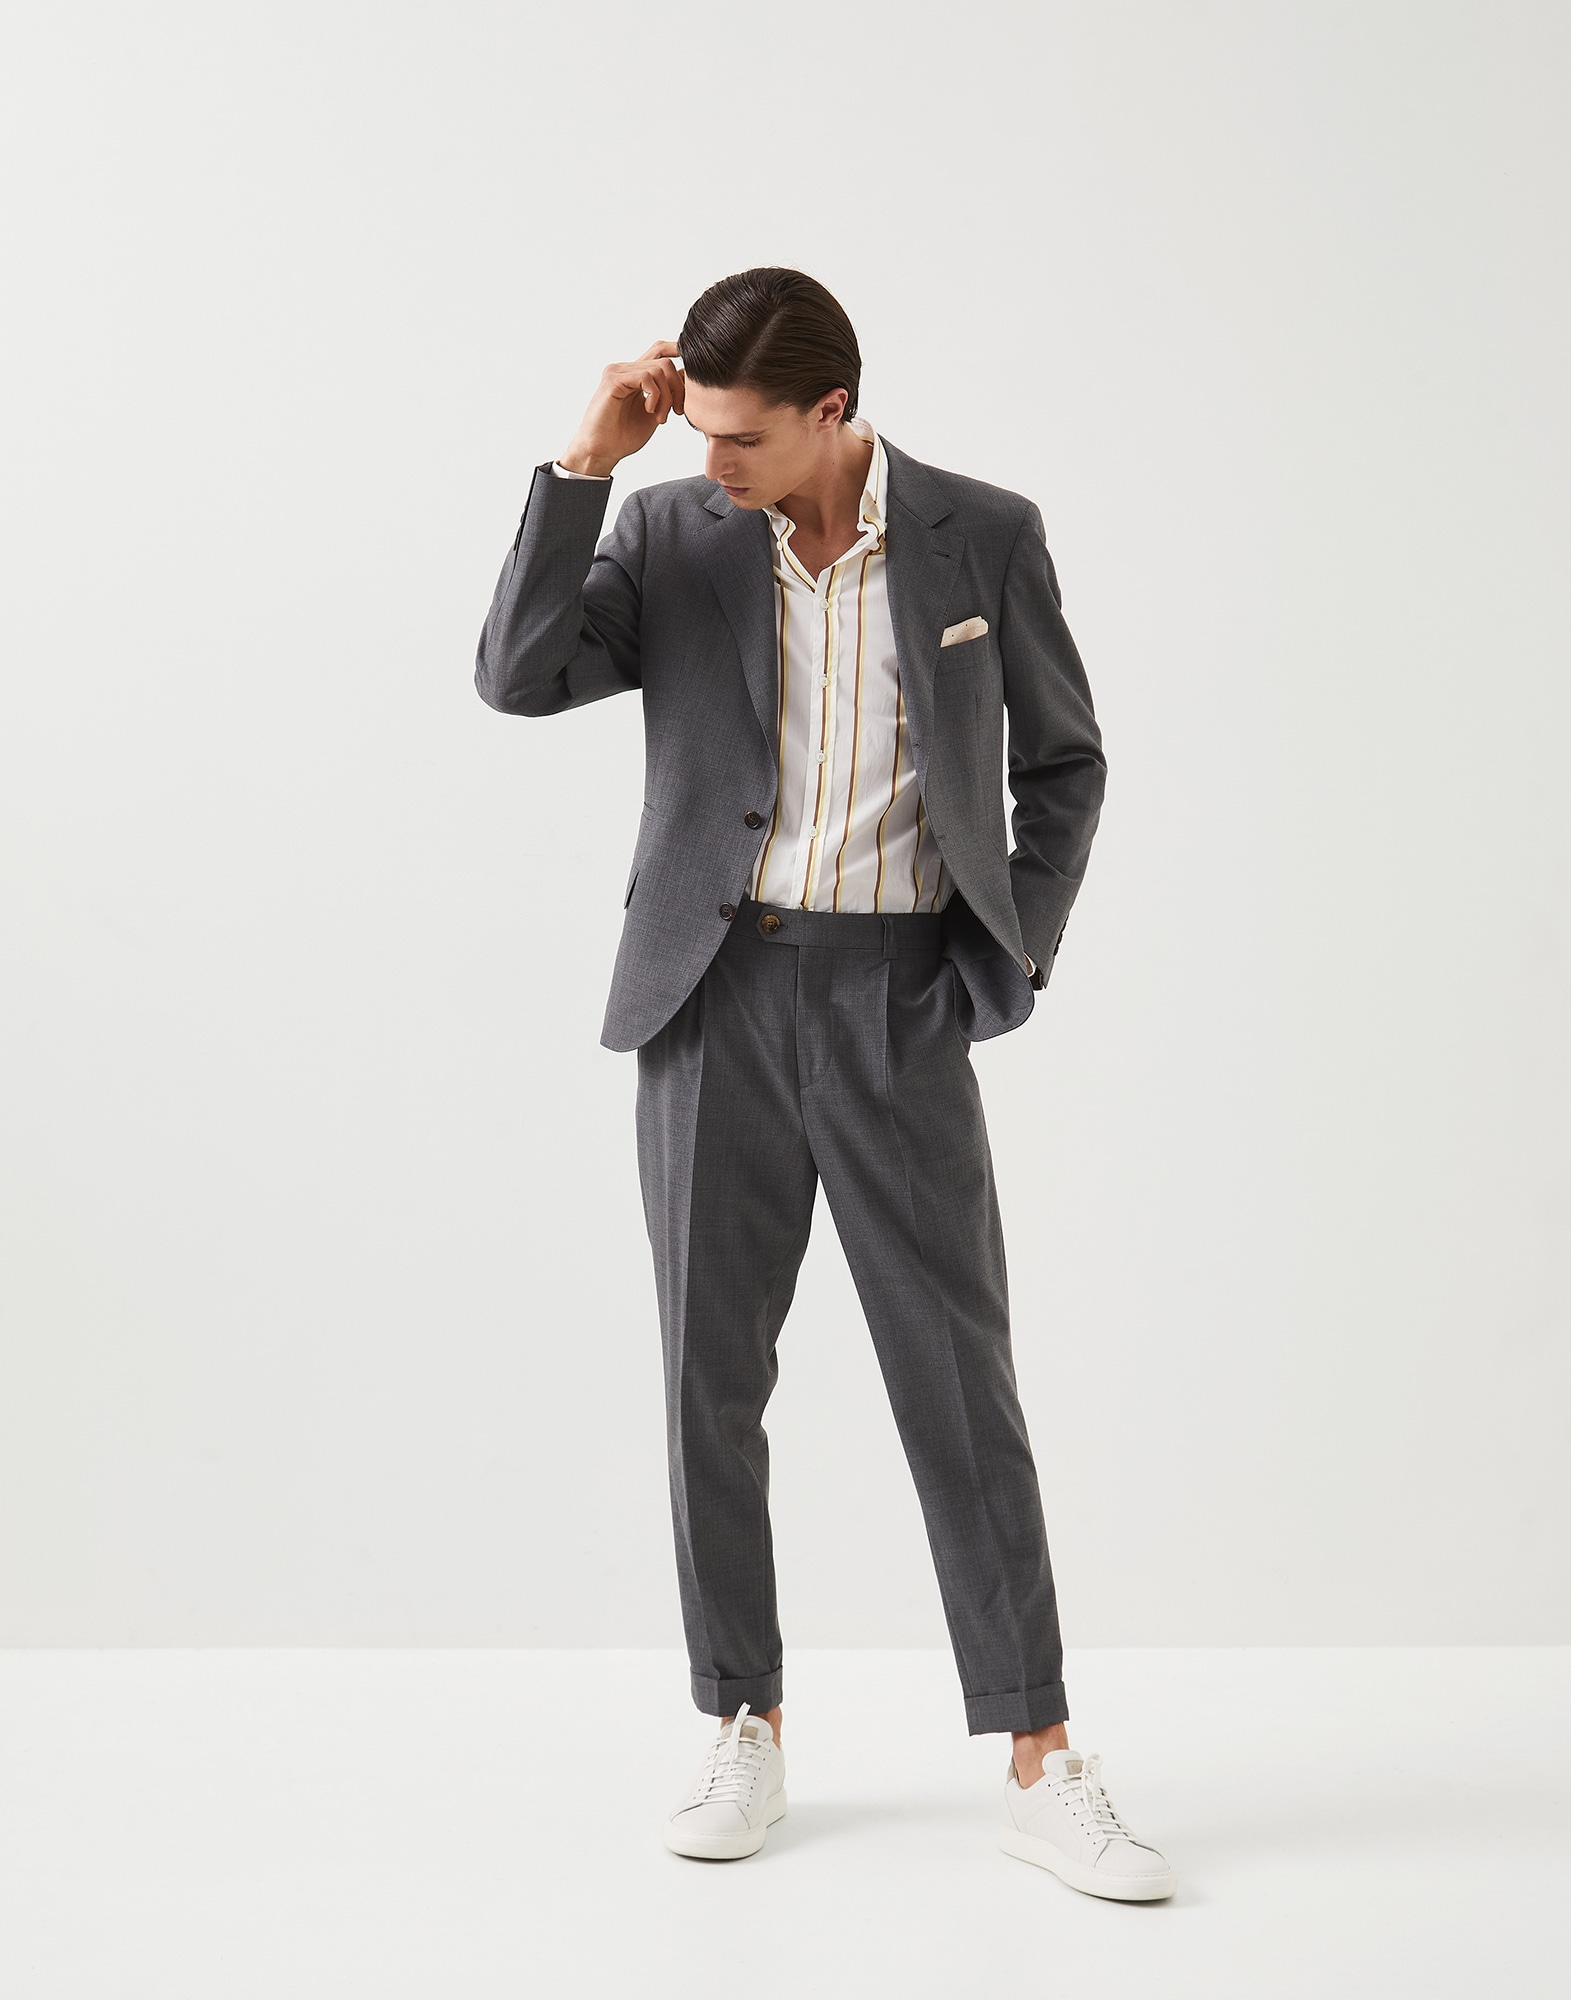 Single Breasted Blazer - Full look